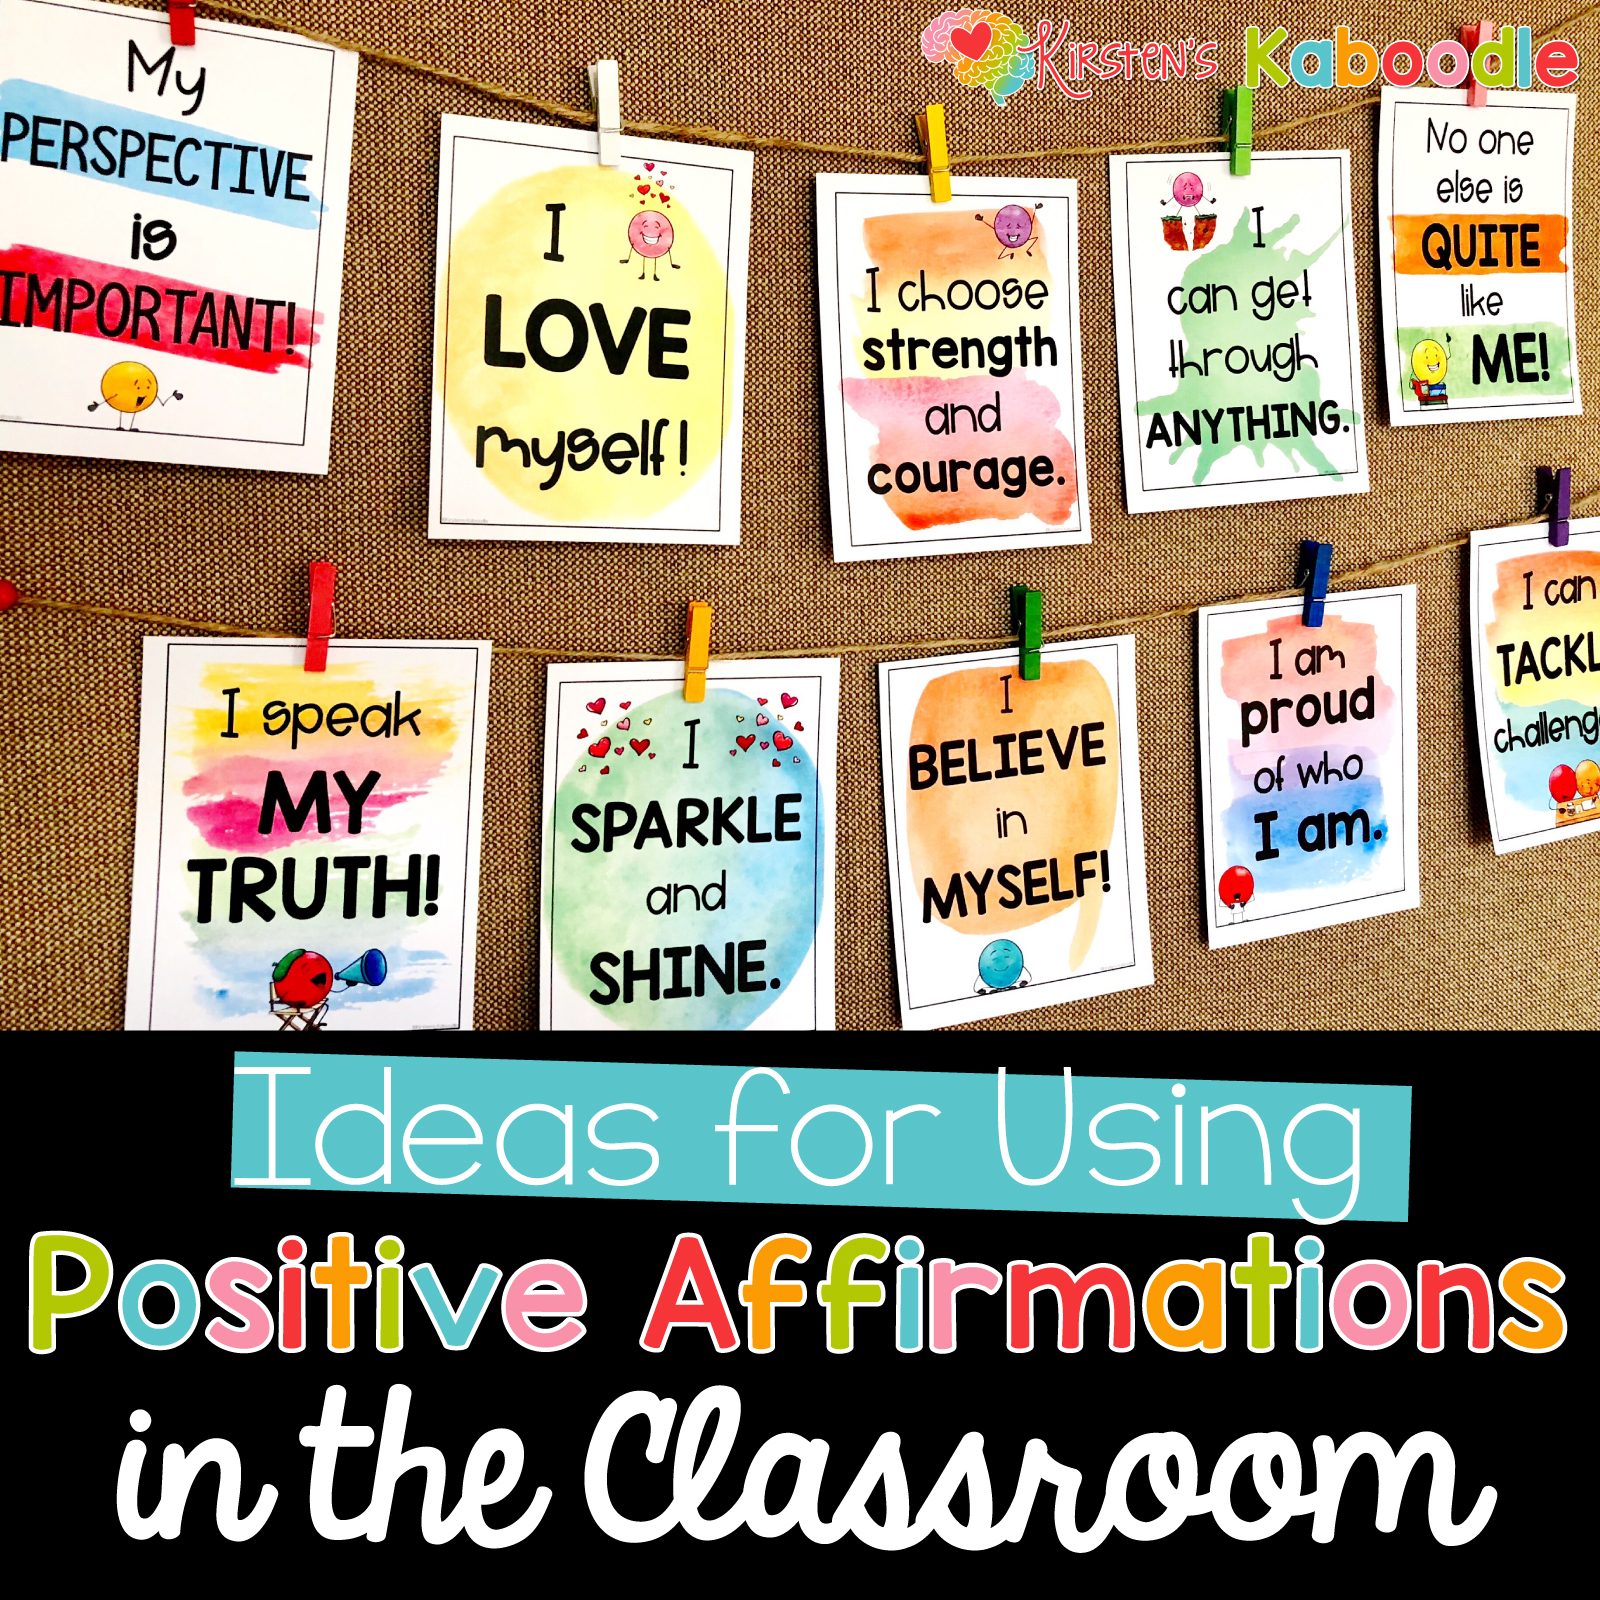 Ideas for Using Positive Affirmations in the Classroom